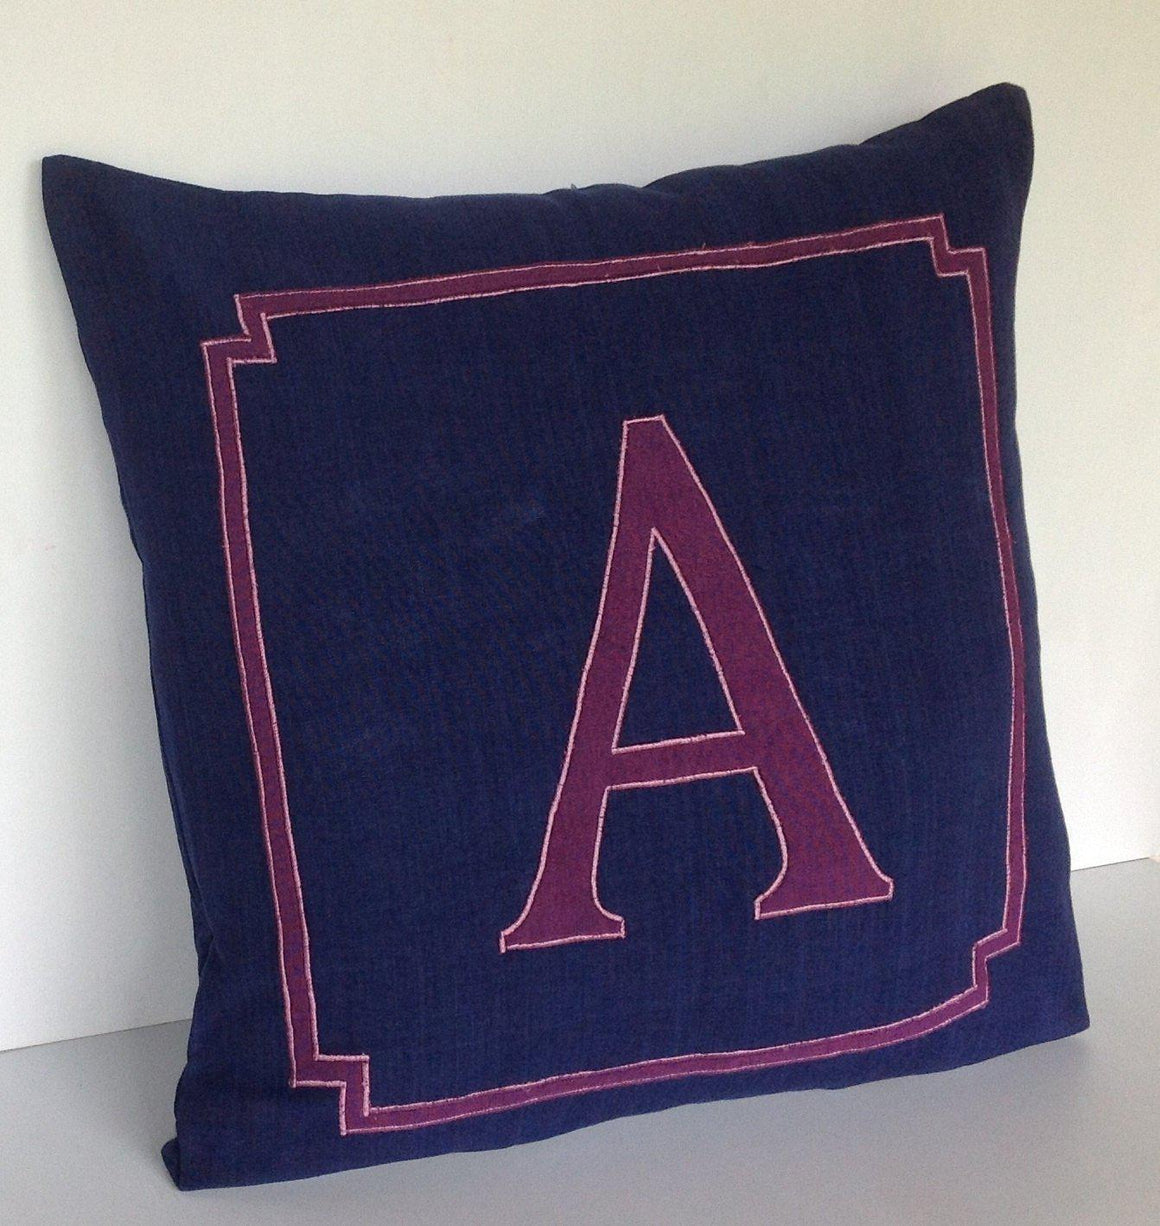 NavyBlue Euro shams, Bedroom Decor Navy,Navy Personalized Monogram Pillow, Decorativ Throw Pillows,26x26 Alphabet pillows - Snazzy Living